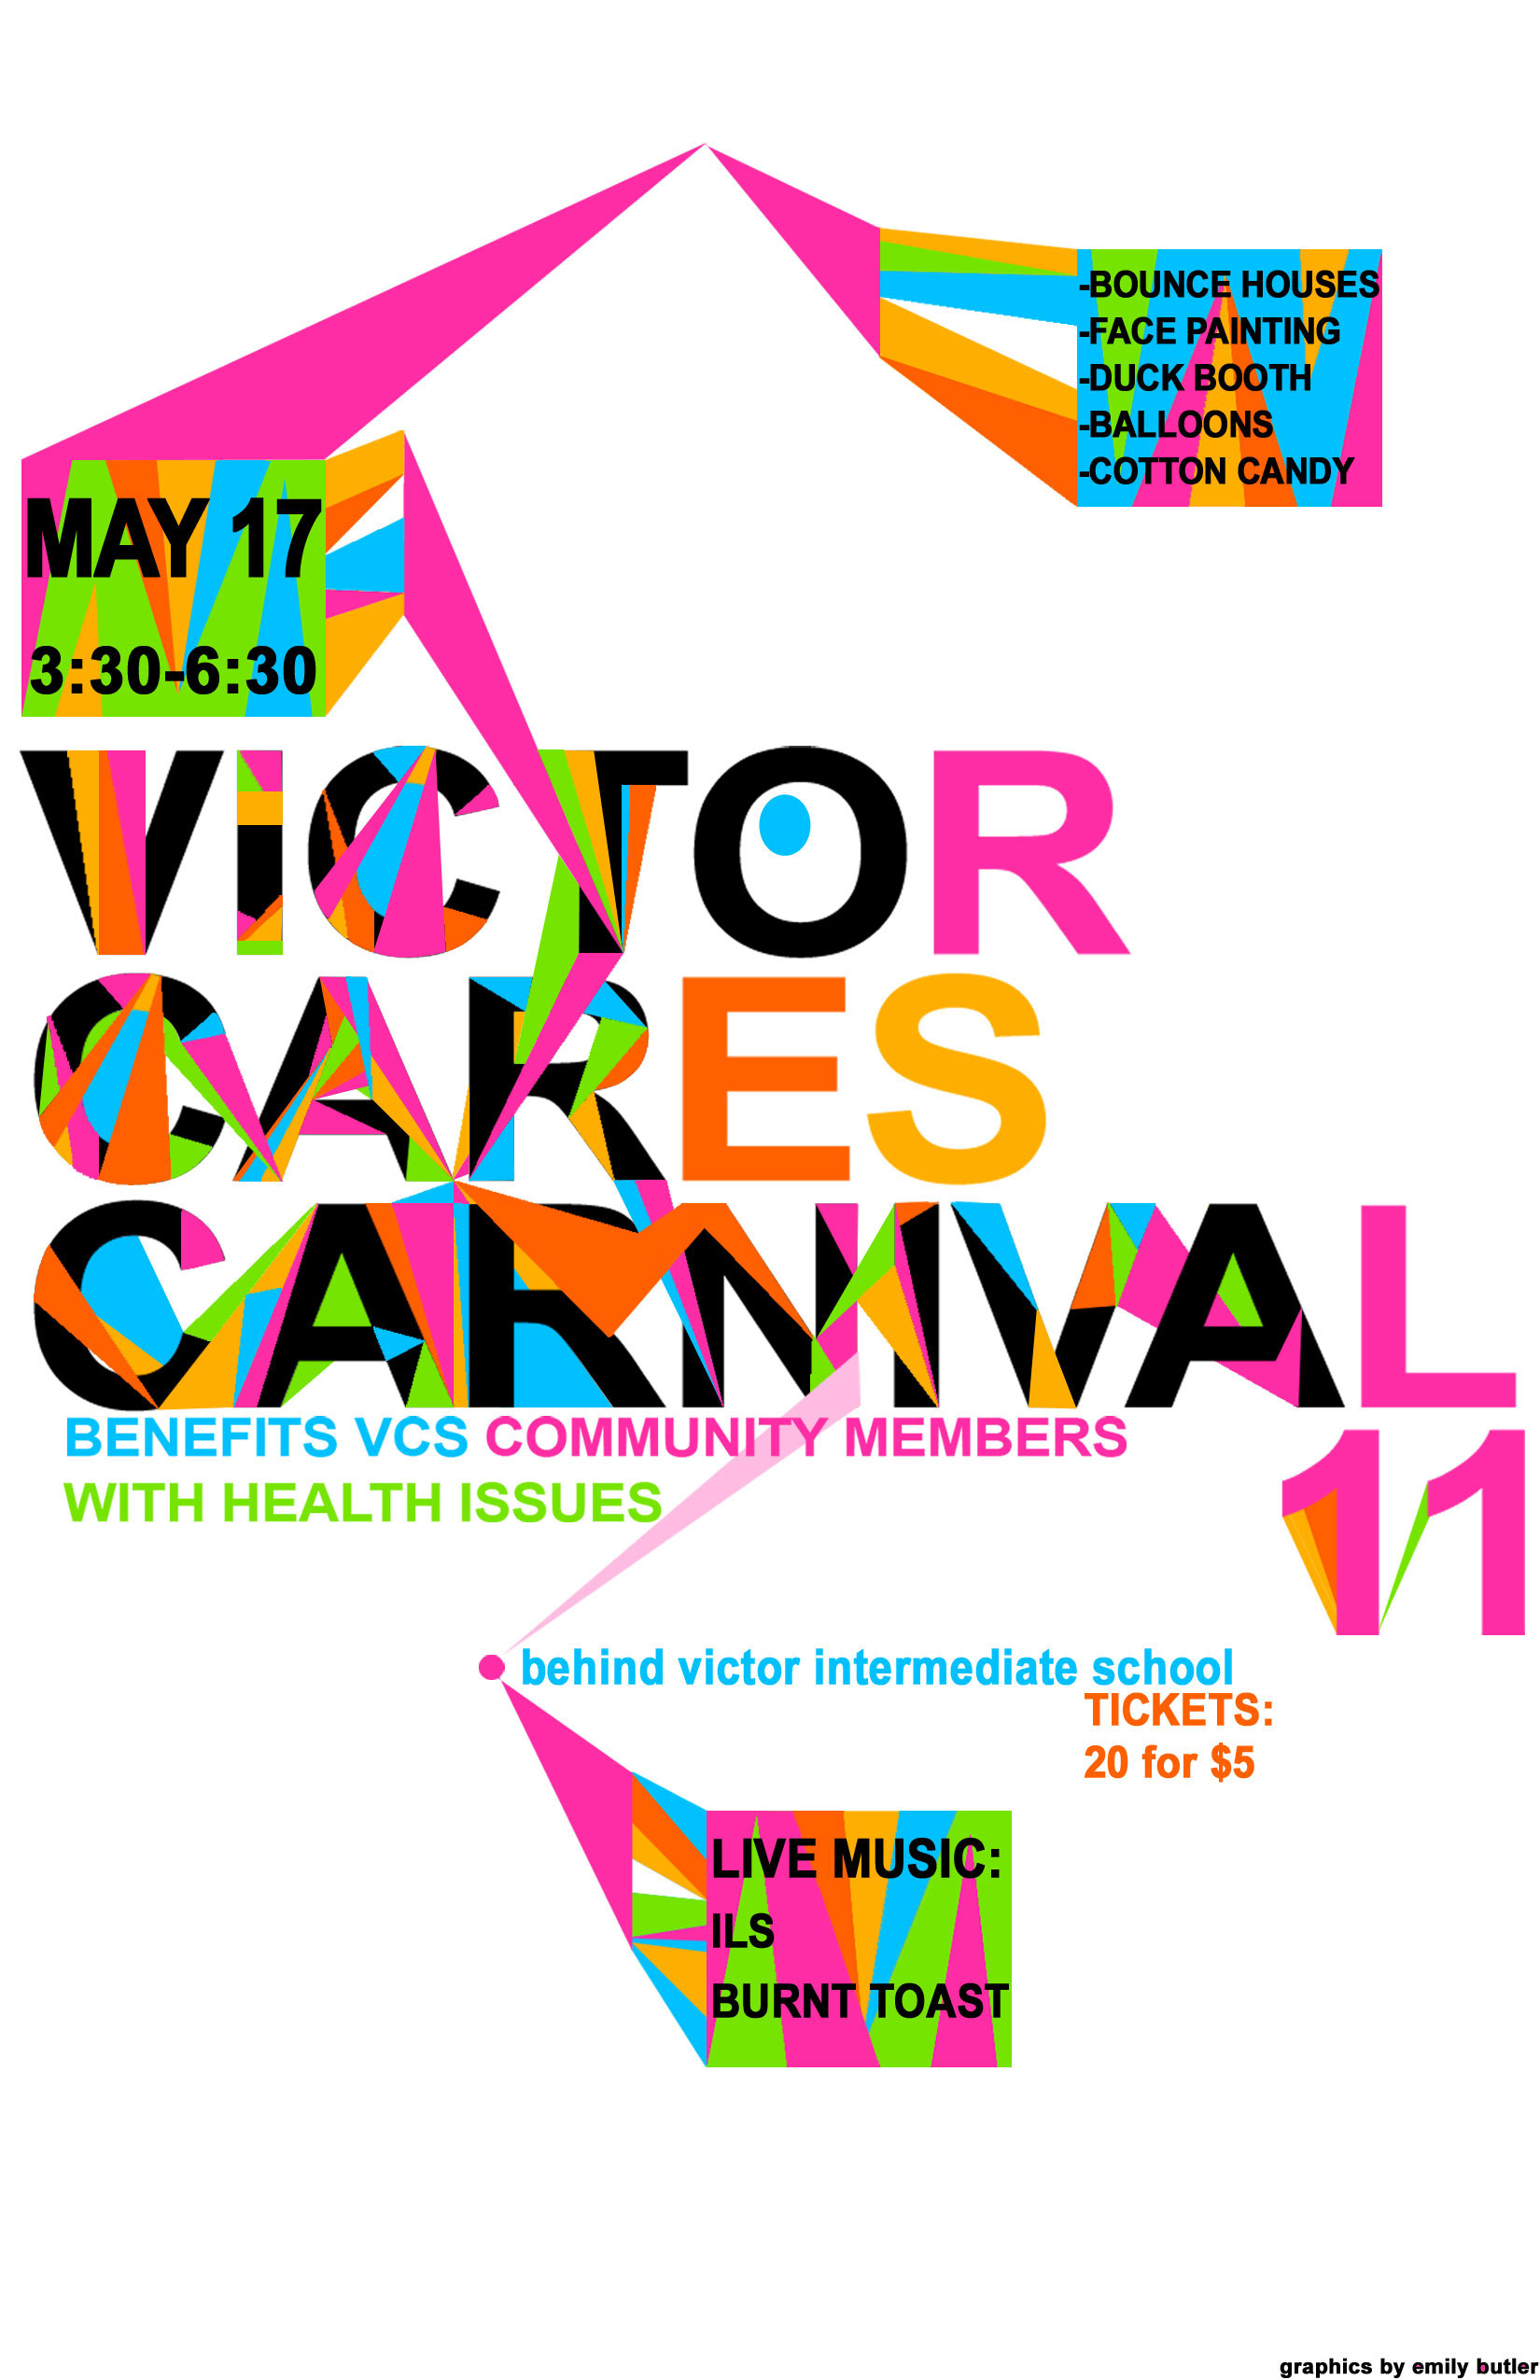 Victor Cares Carnival Poster